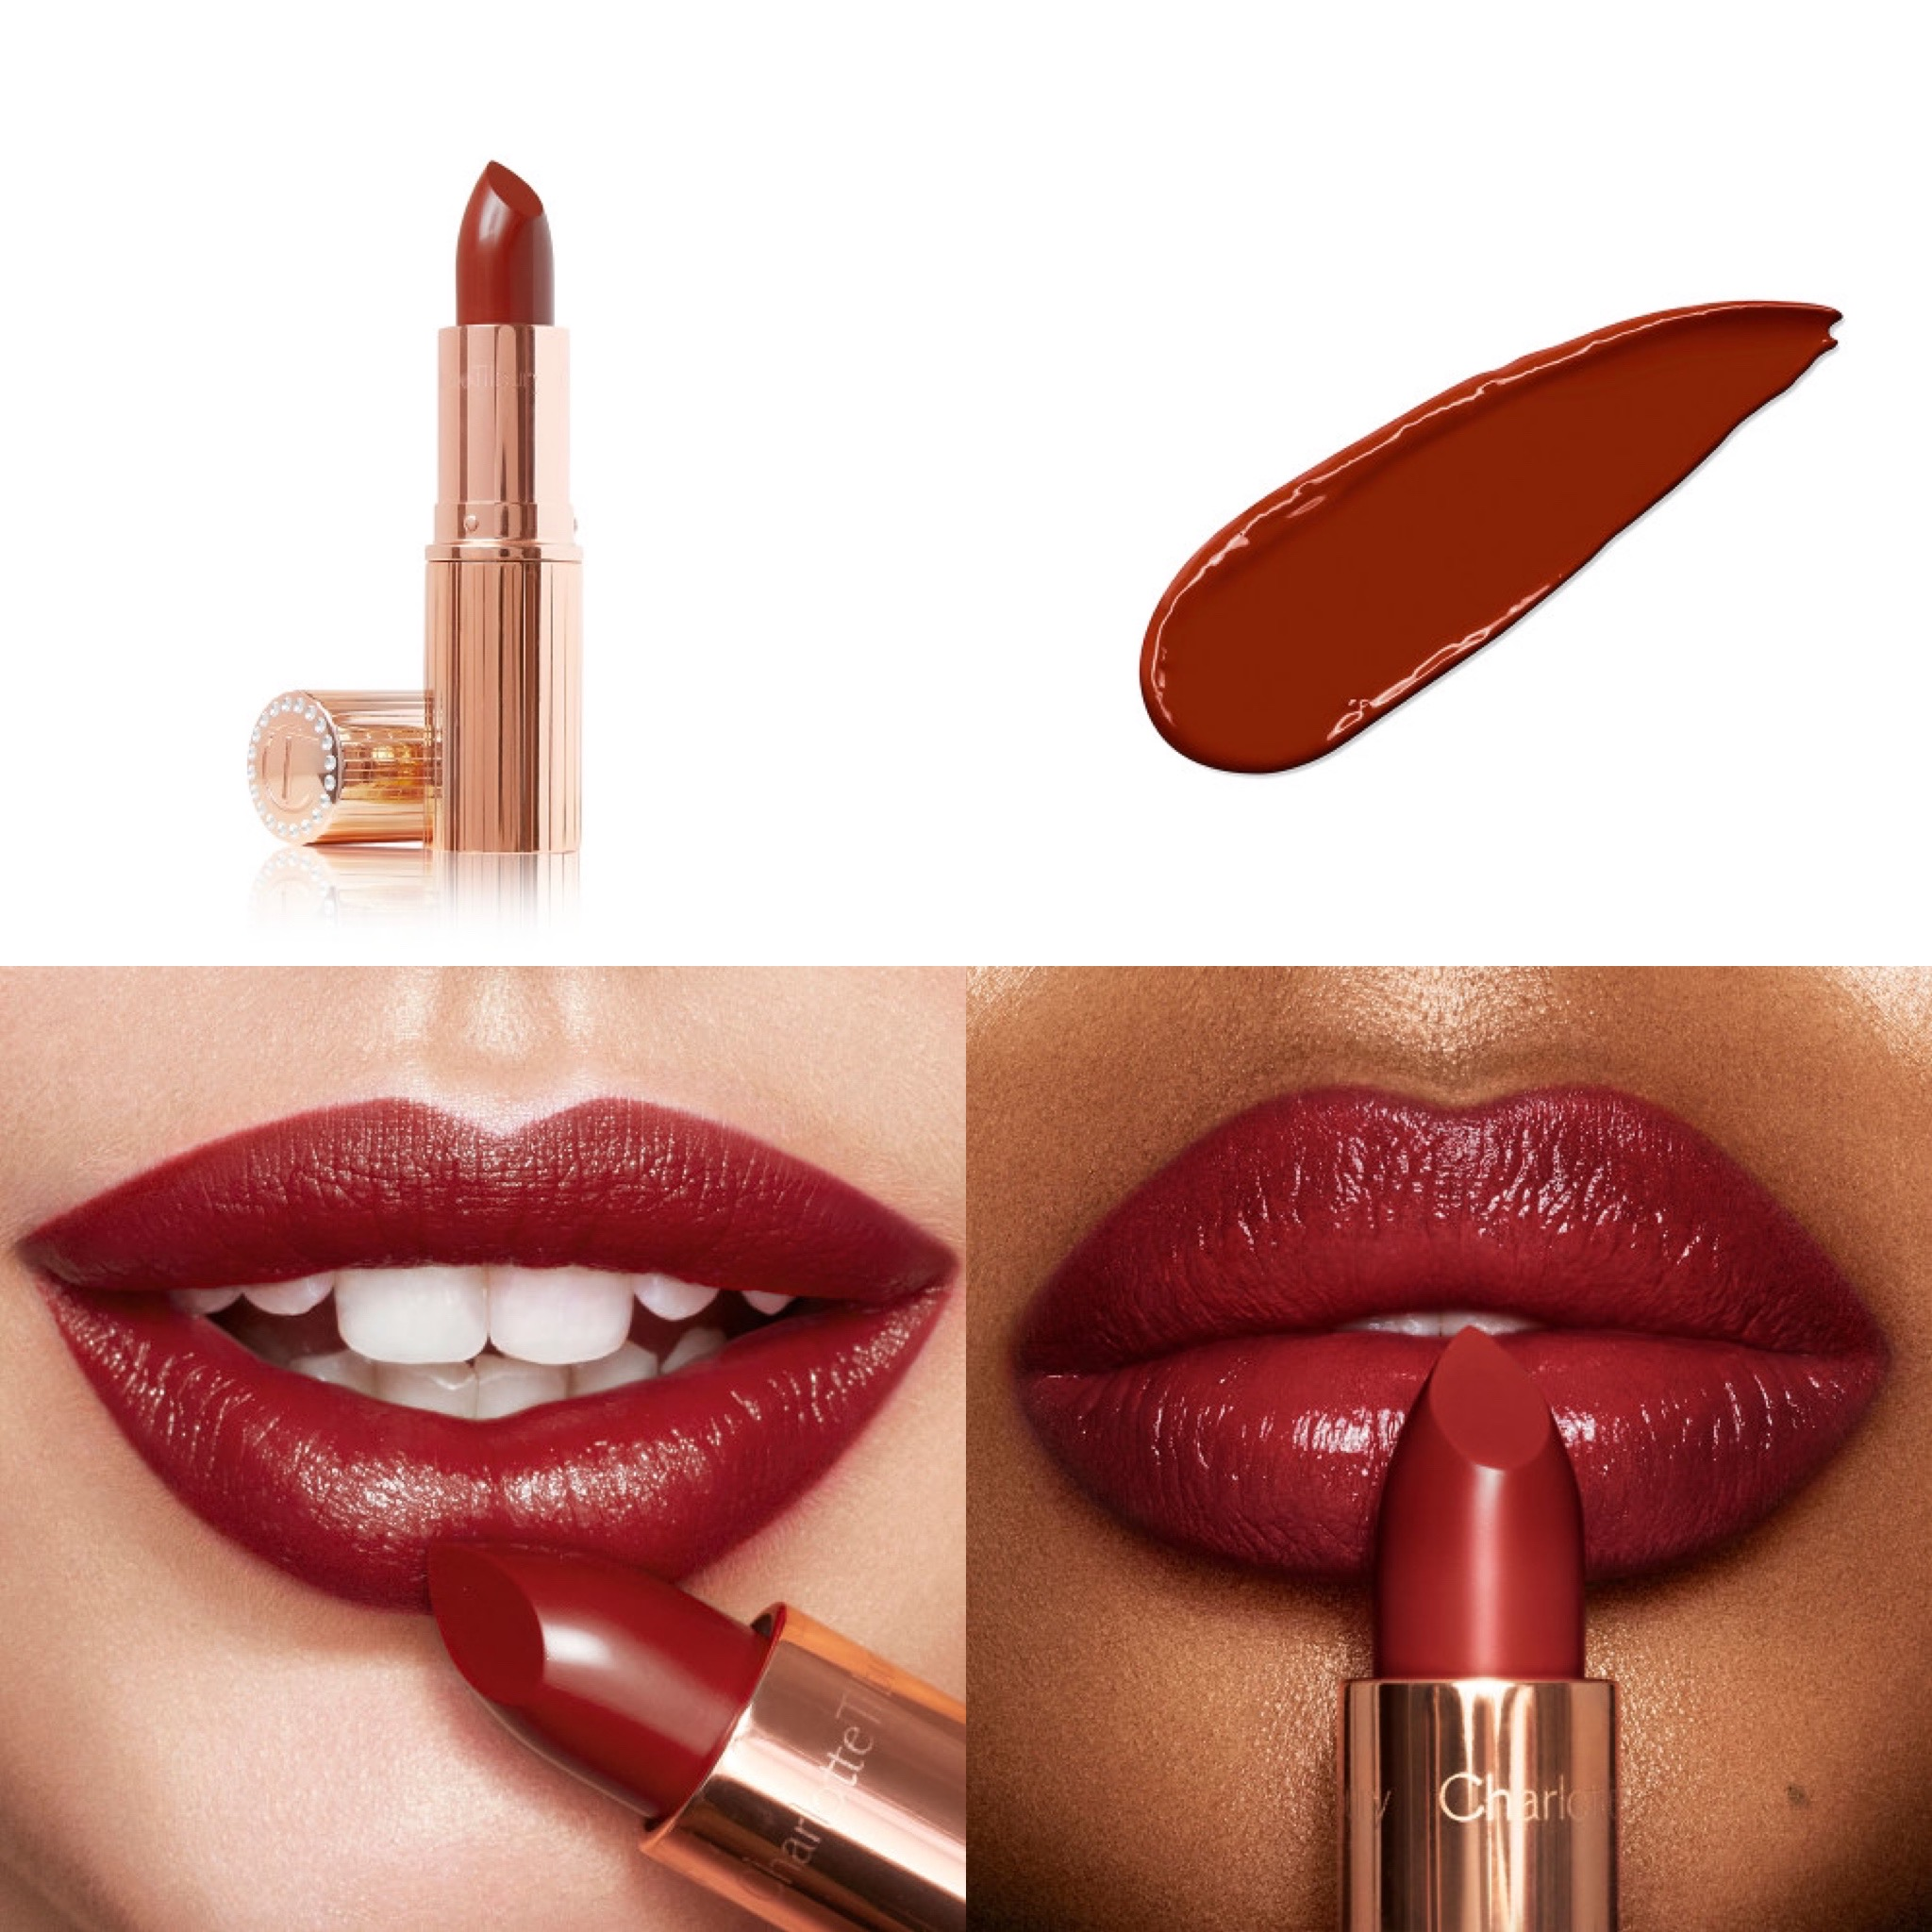 Charlotte Tilbury Super Lipsticks Collection